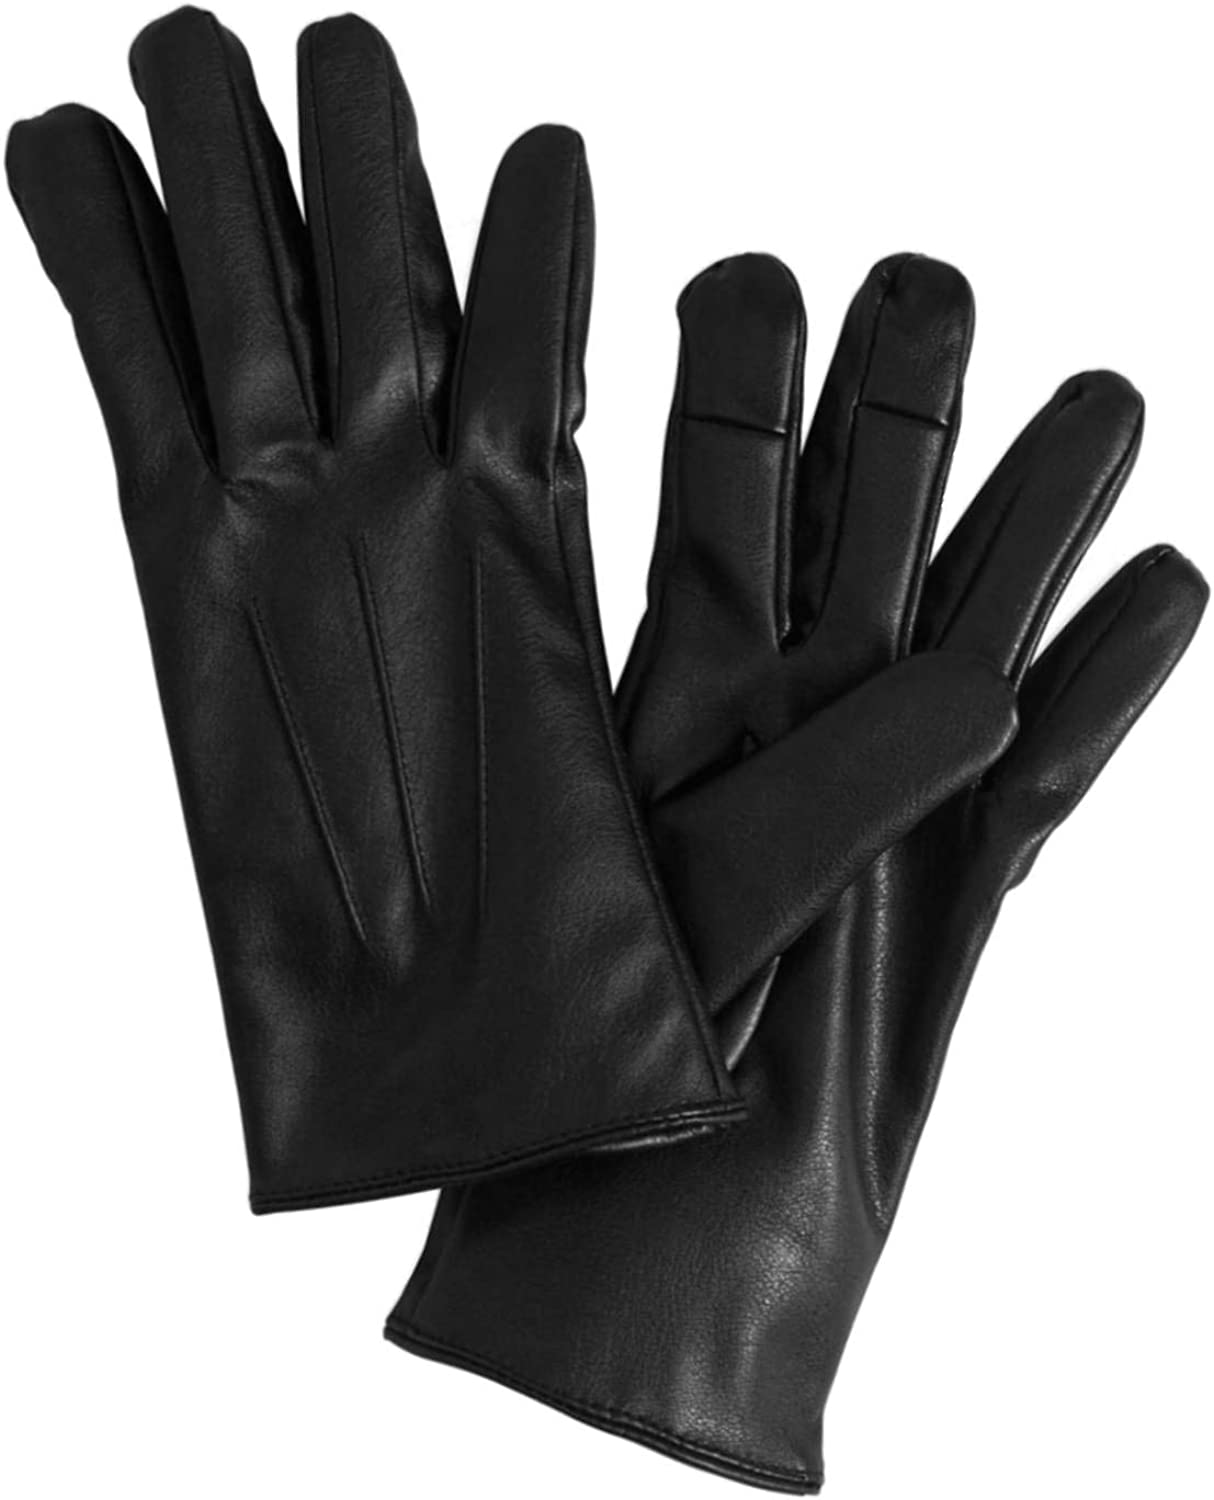 Womens Black Leather-look Text & Tech Gloves Touch Screen Compatible